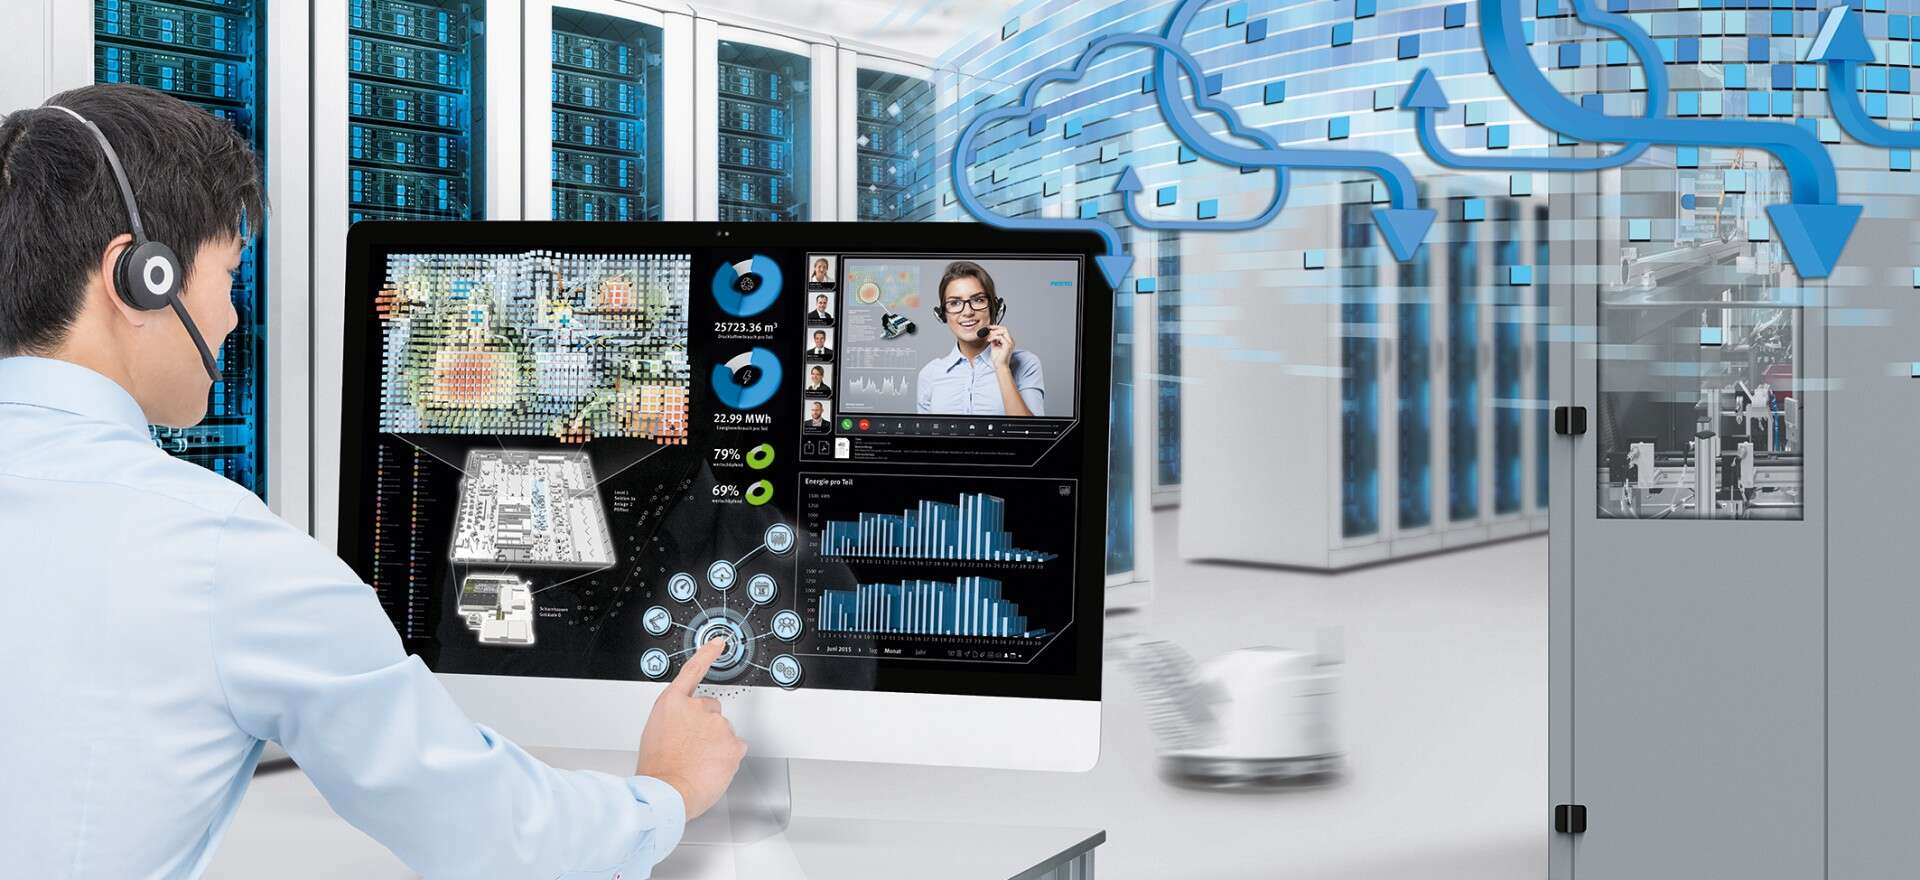 Industry 4.0 technologies are revolutionising the manufacturing workplace